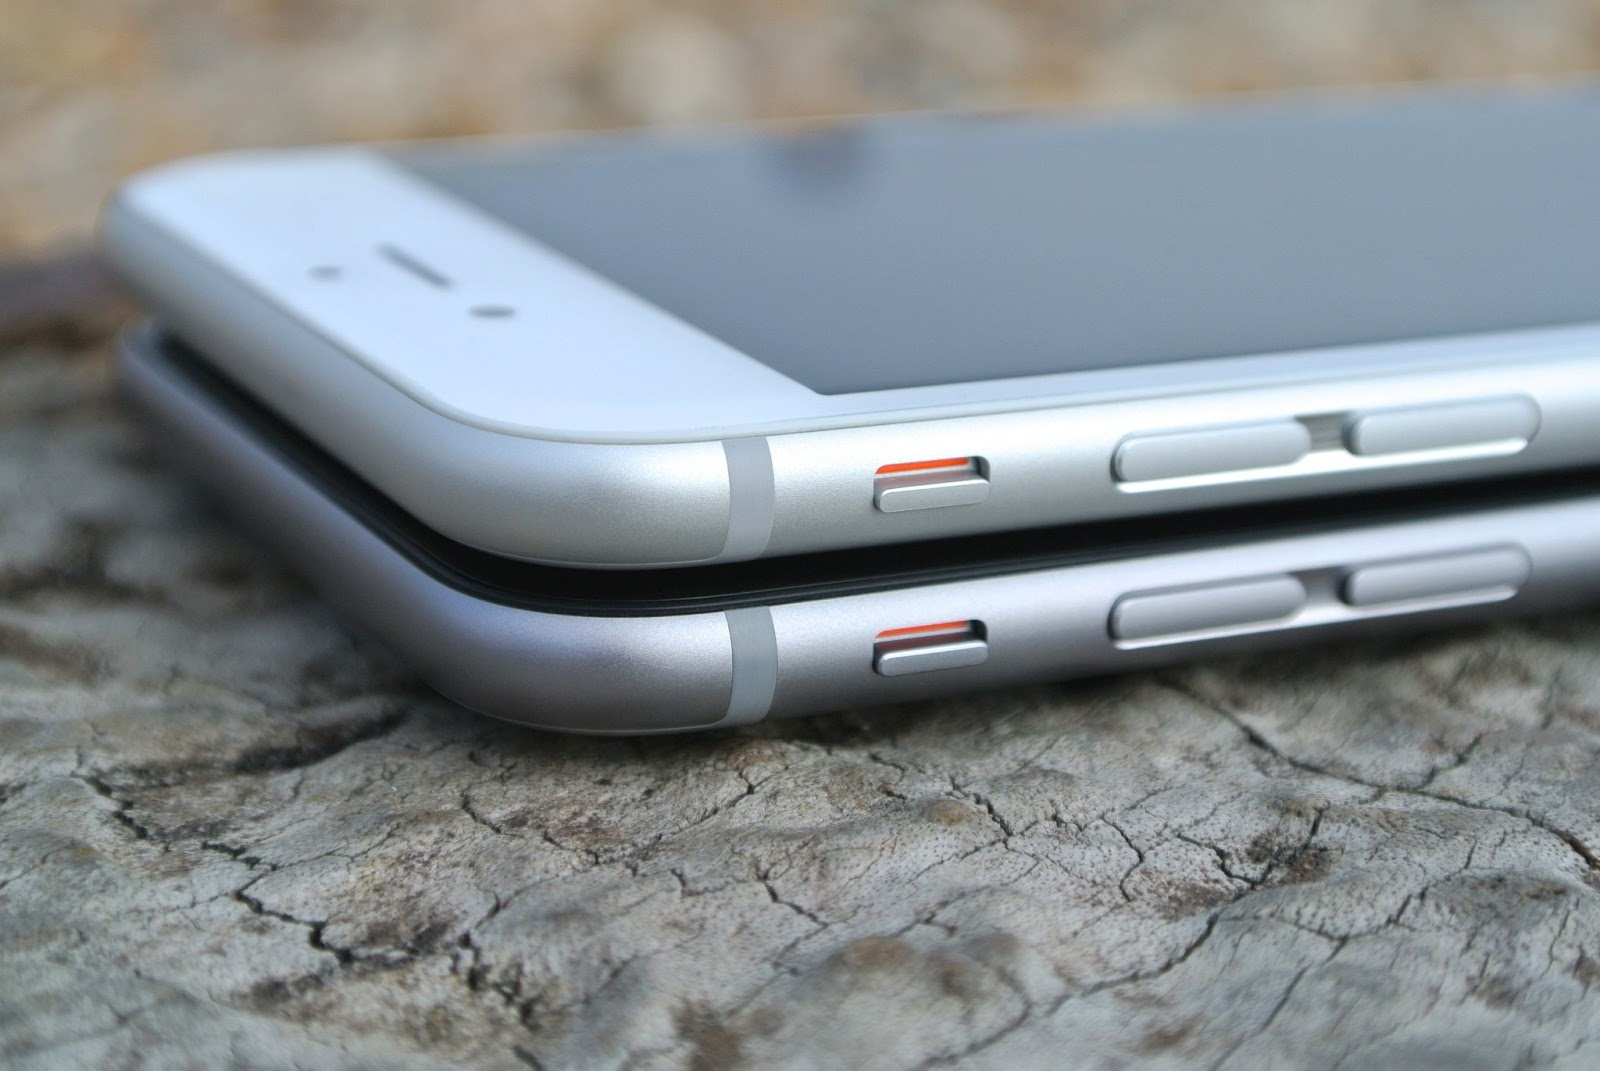 Two iPhones on top of each other